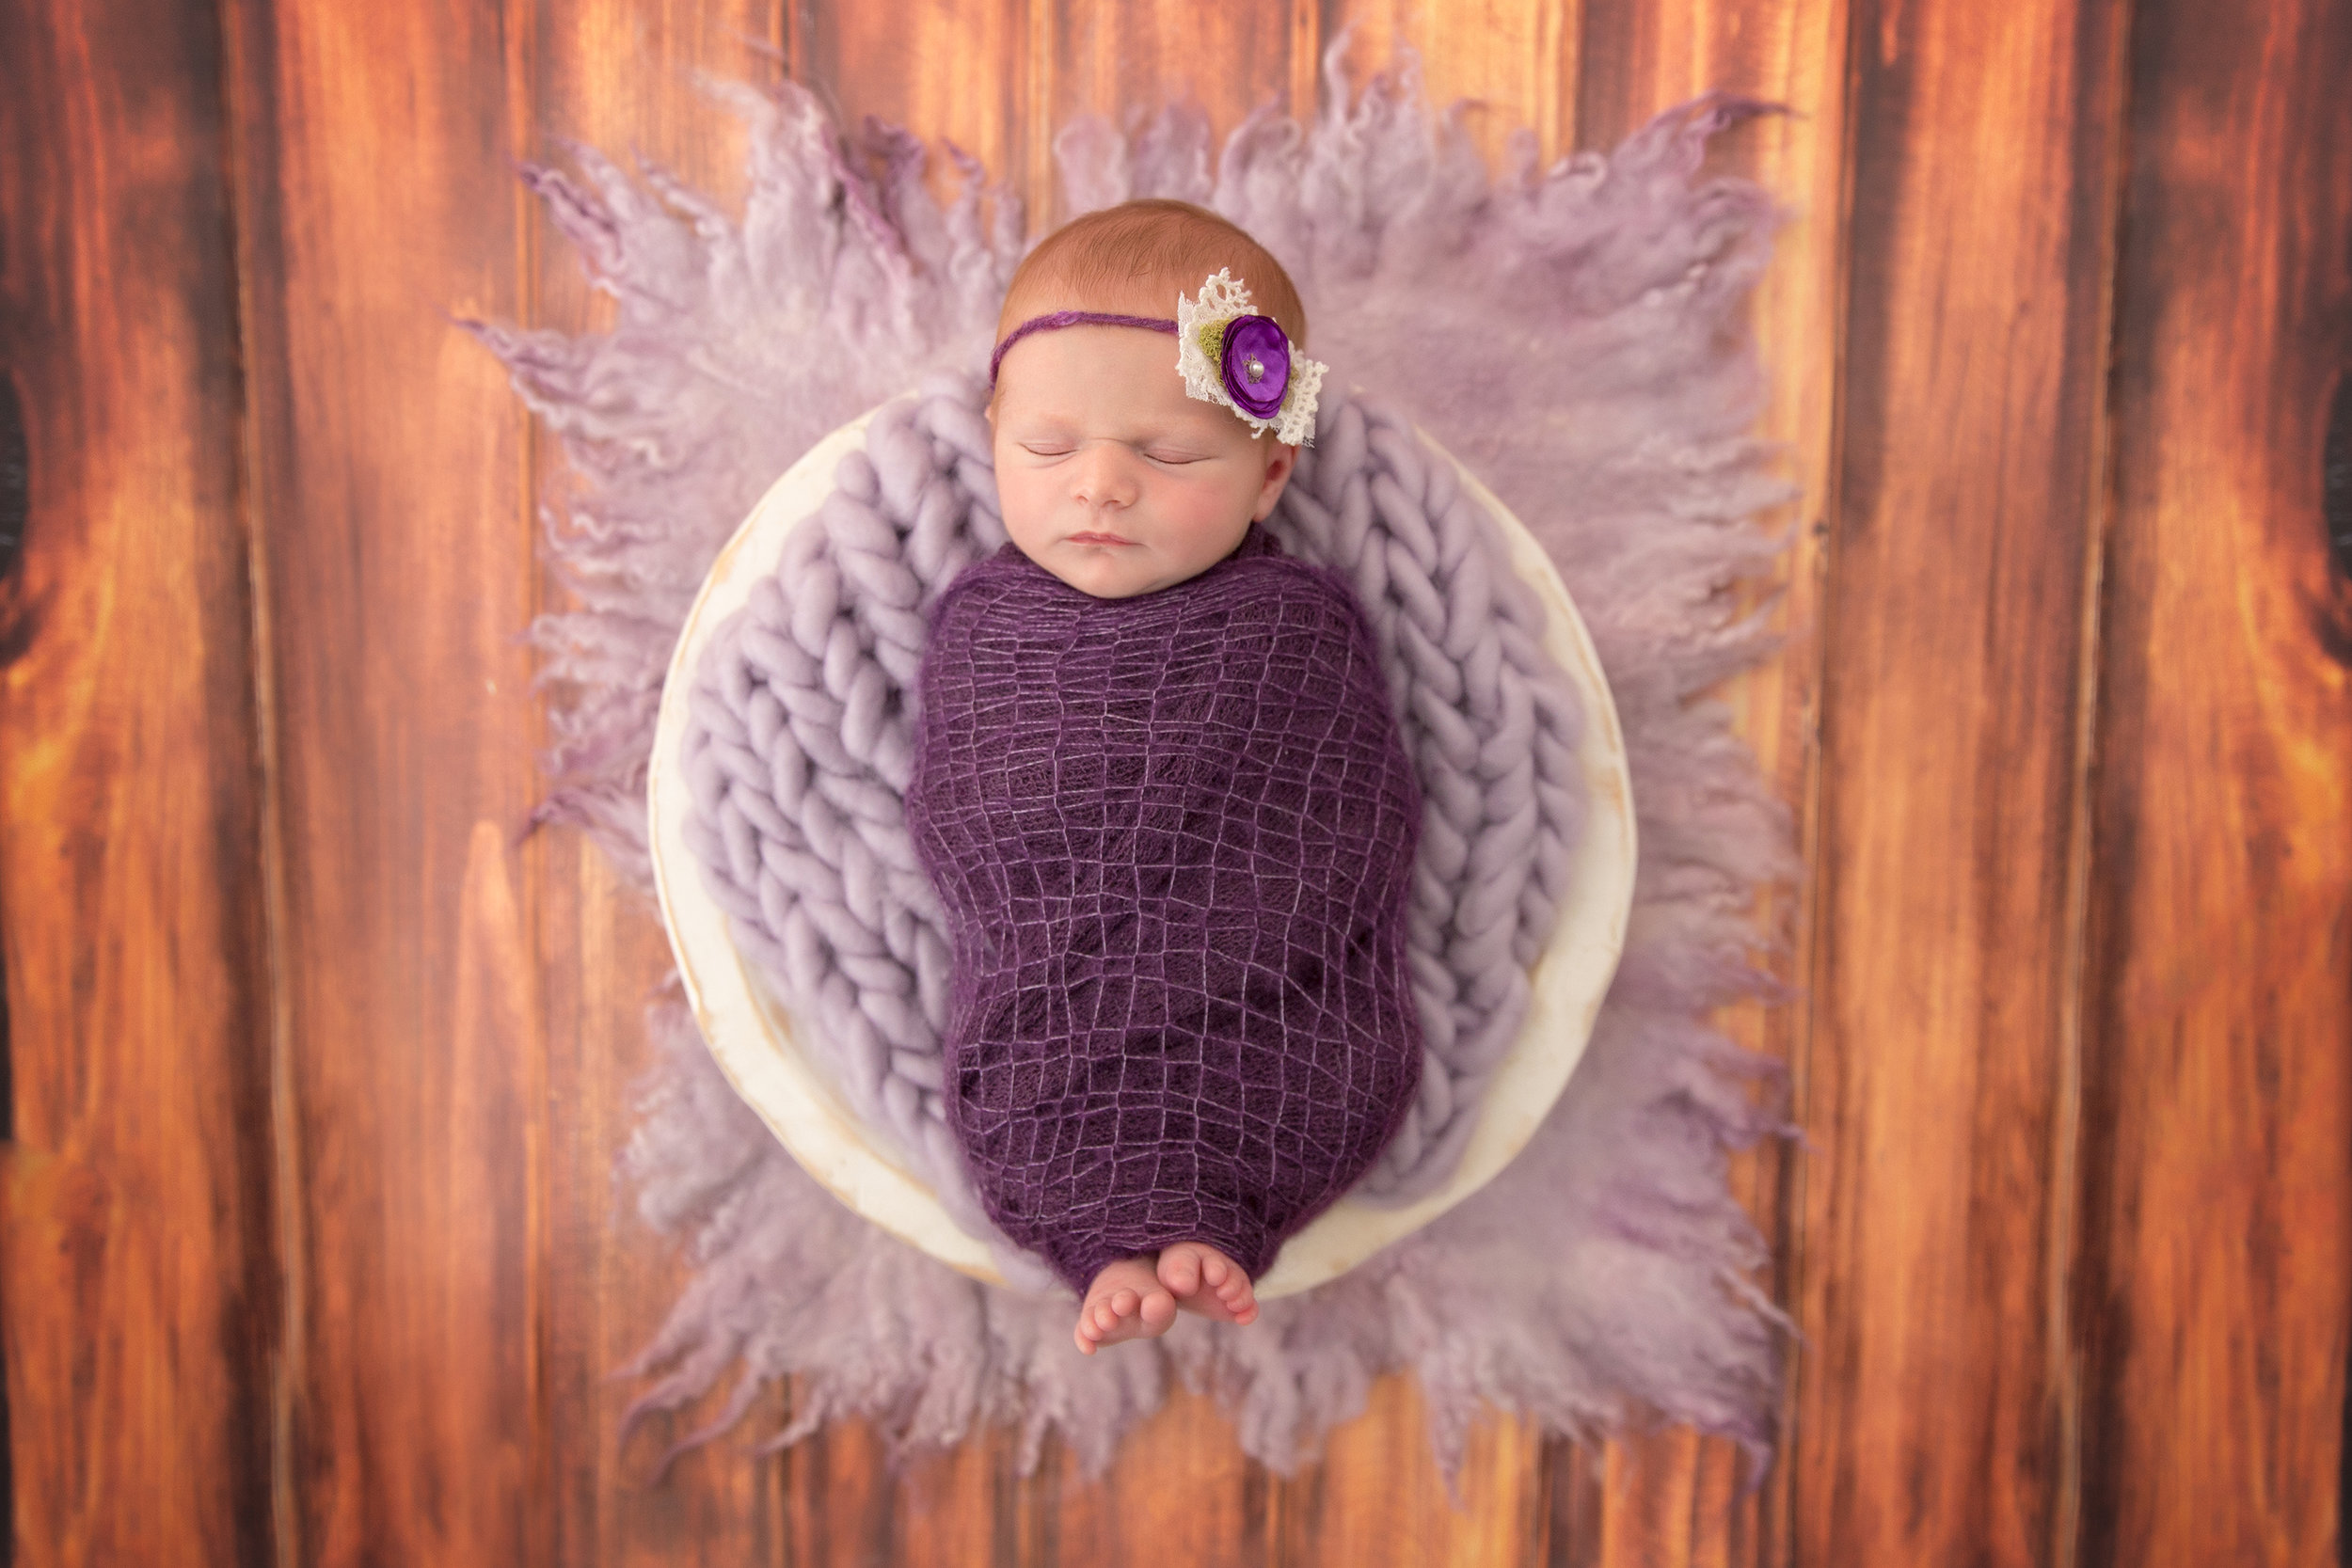 Baby girl wrapped in a purple wrap with her little toes showing lying in a white wooden bowl. Calgary Photographer - Milashka Photography - Newborn photography - Newborn Photoshoot inspiration ideas.